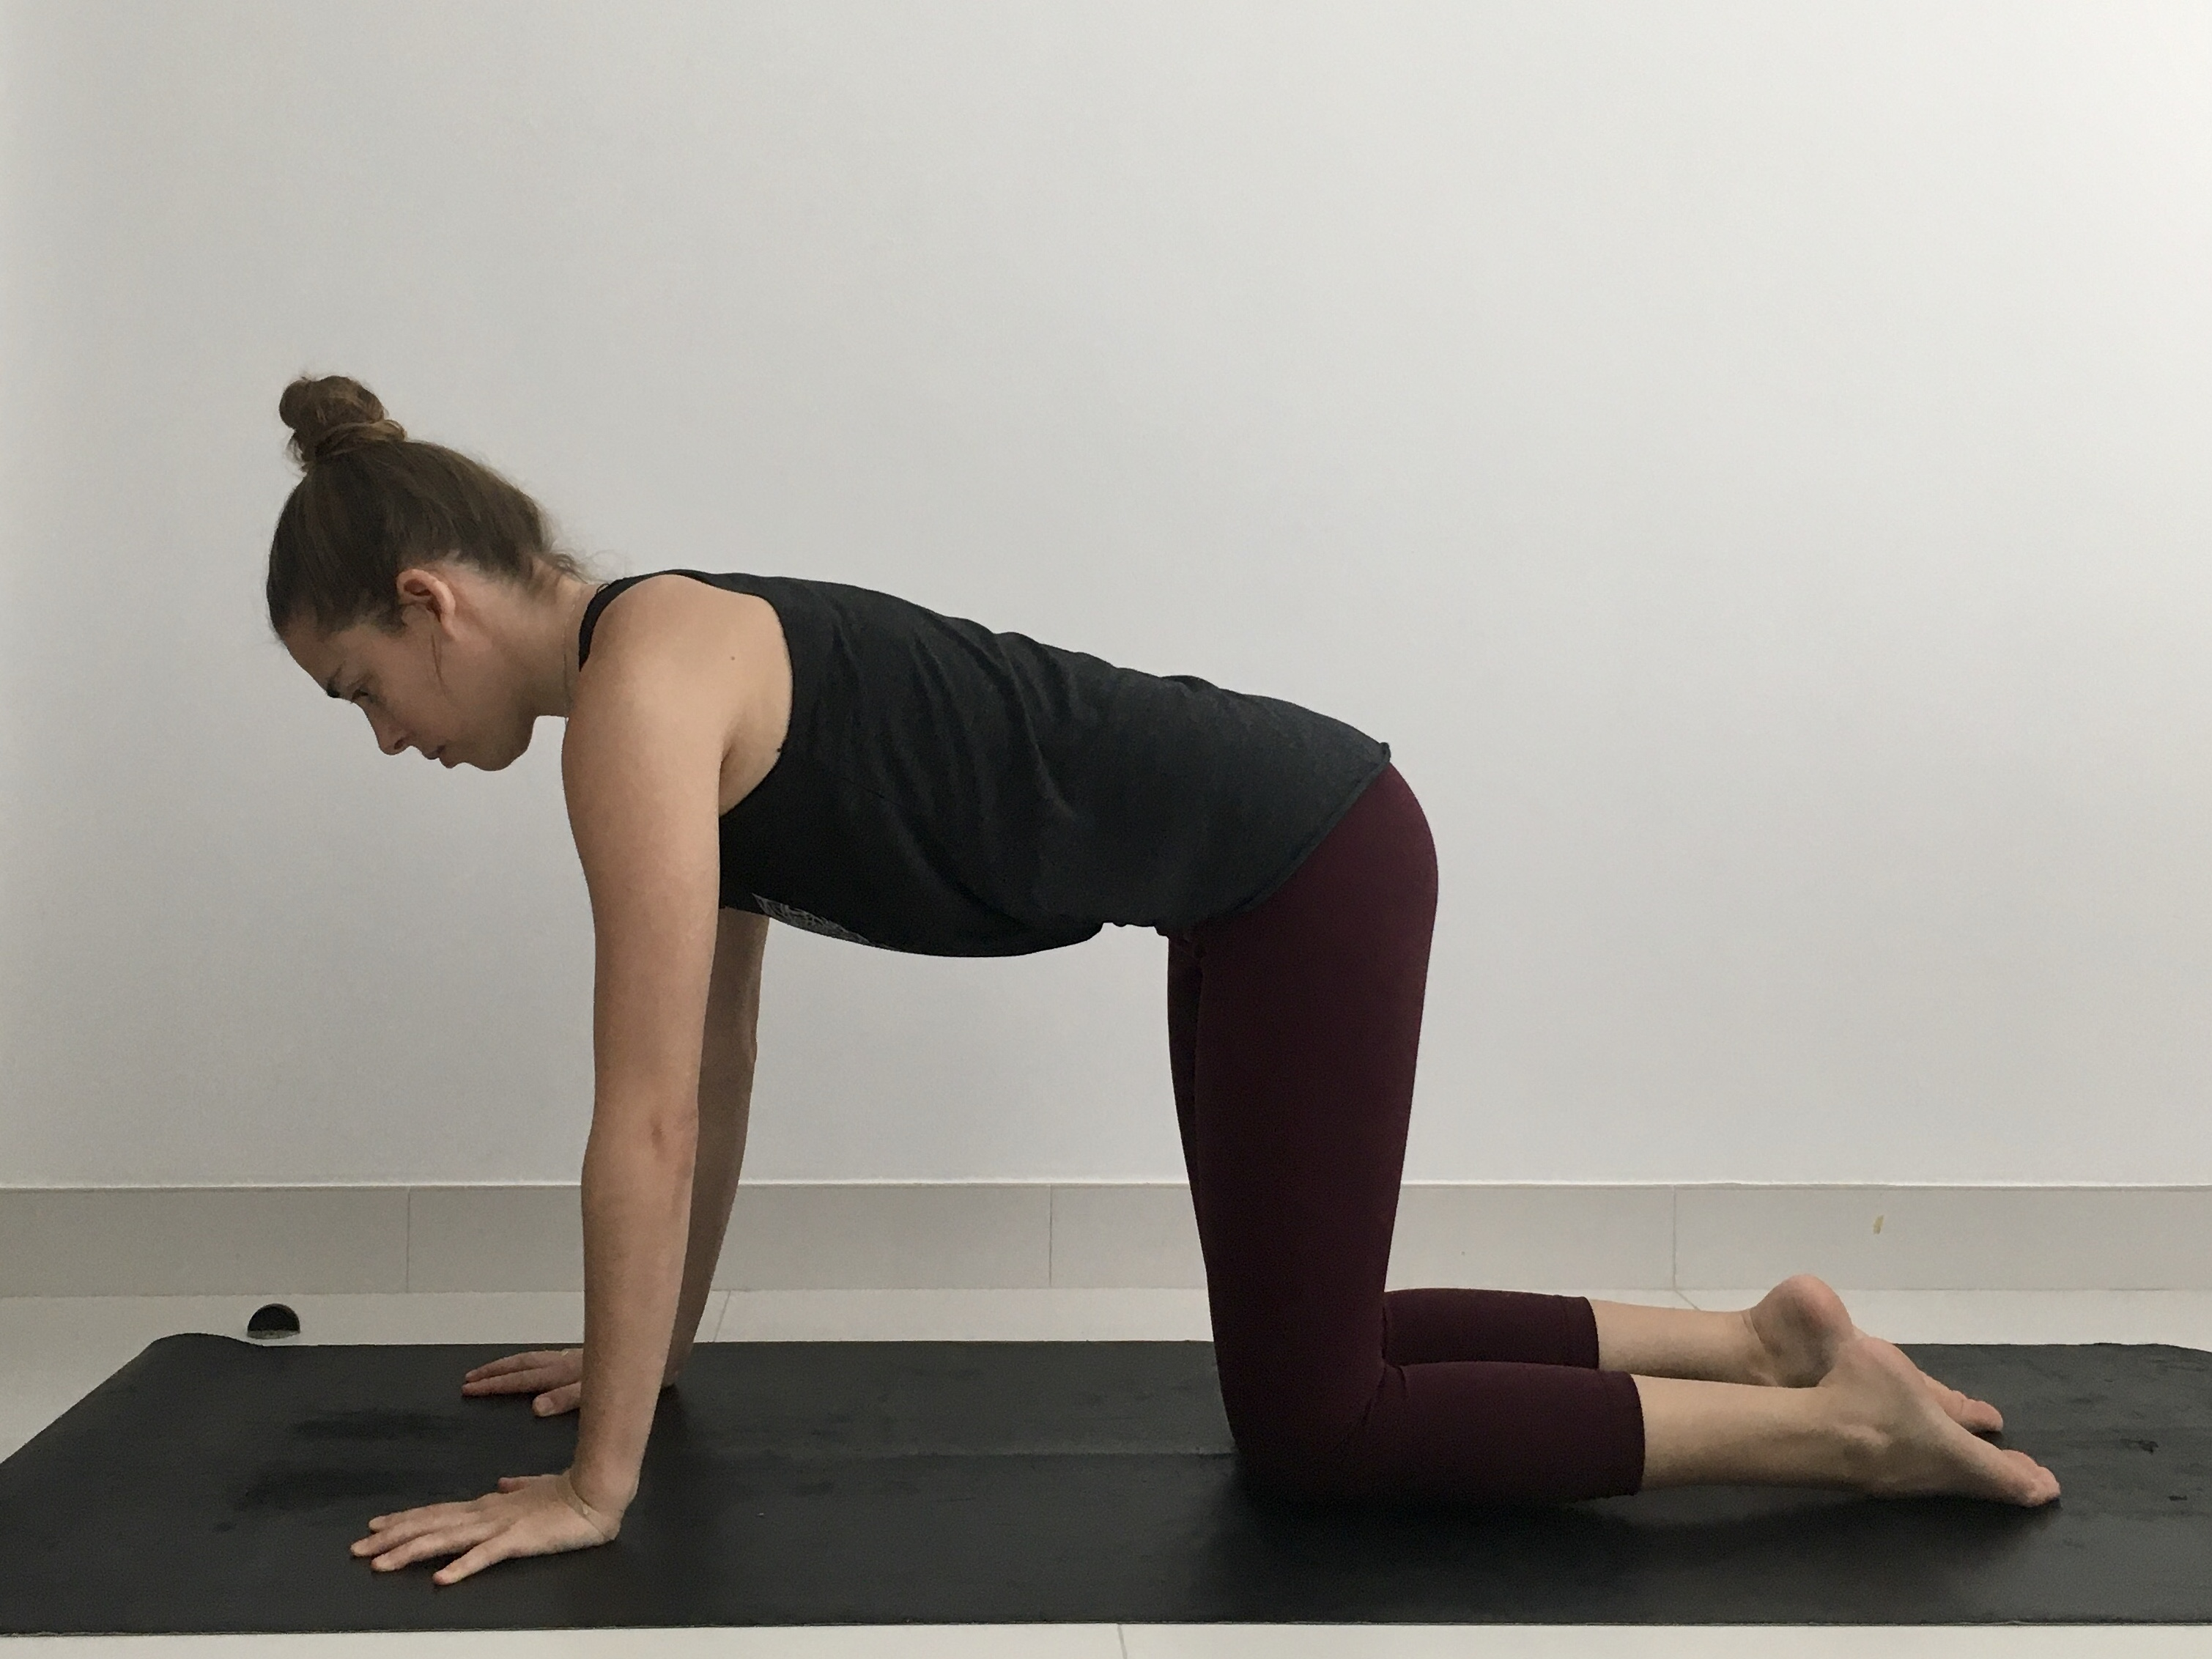 Table Top Pose, Bharmanasana, Beginner's yoga, Weight-bearing pose, strengthen and stabilize the muscles of the rotator cuff